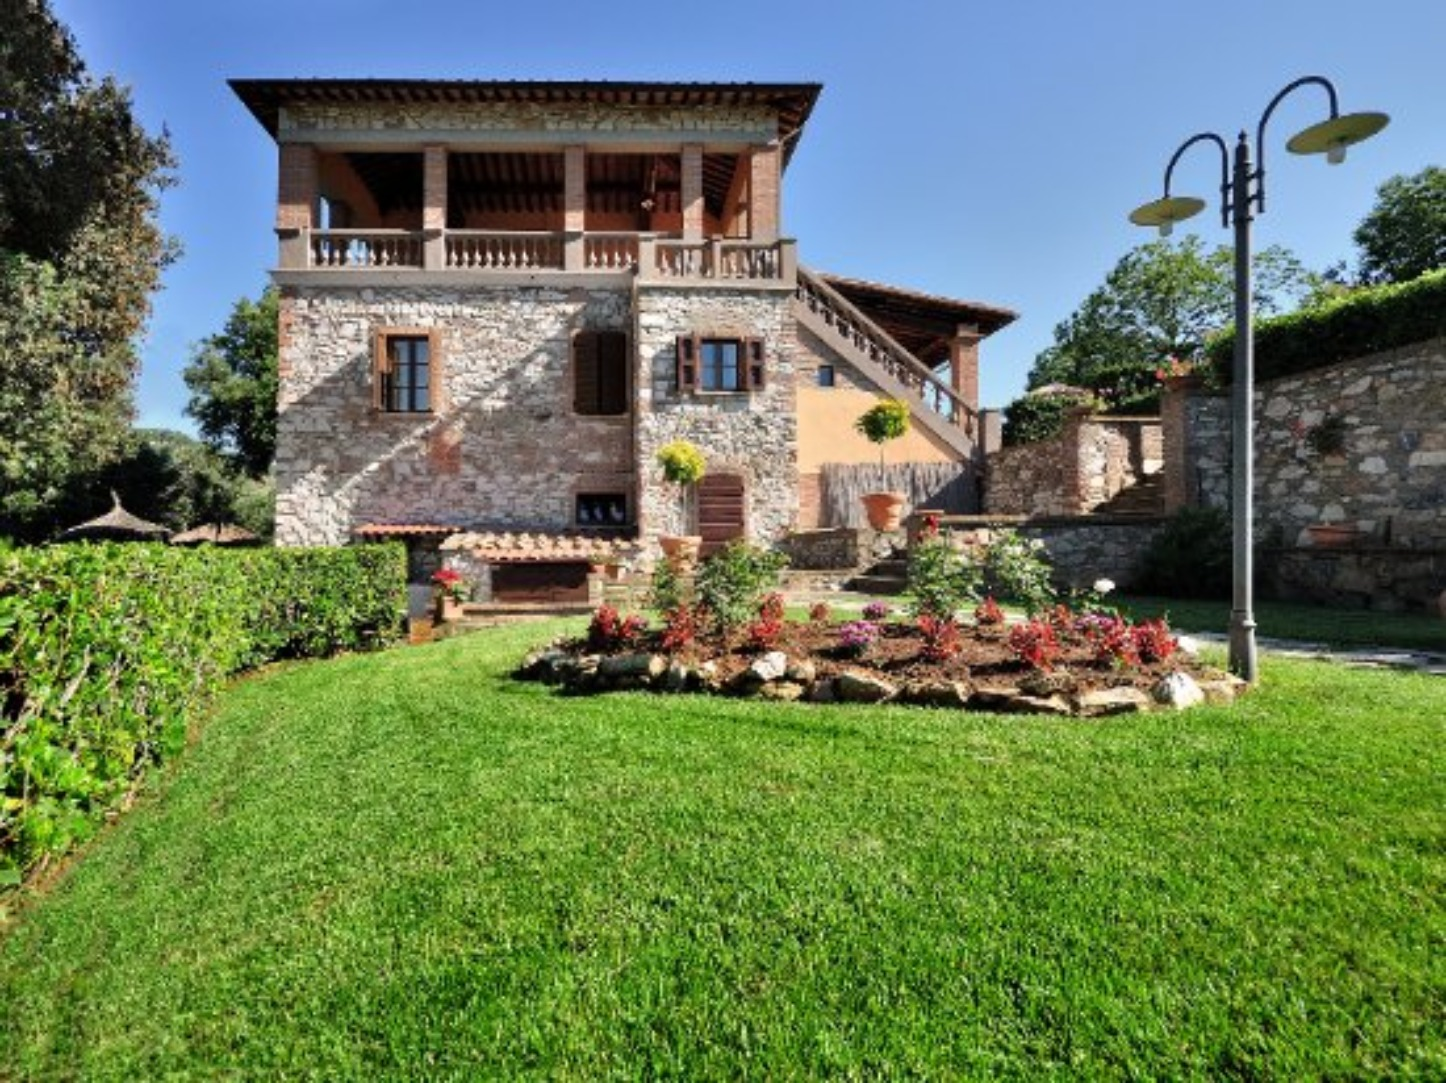 A large brick building with grass in front of a house at Il Castagno Toscana.